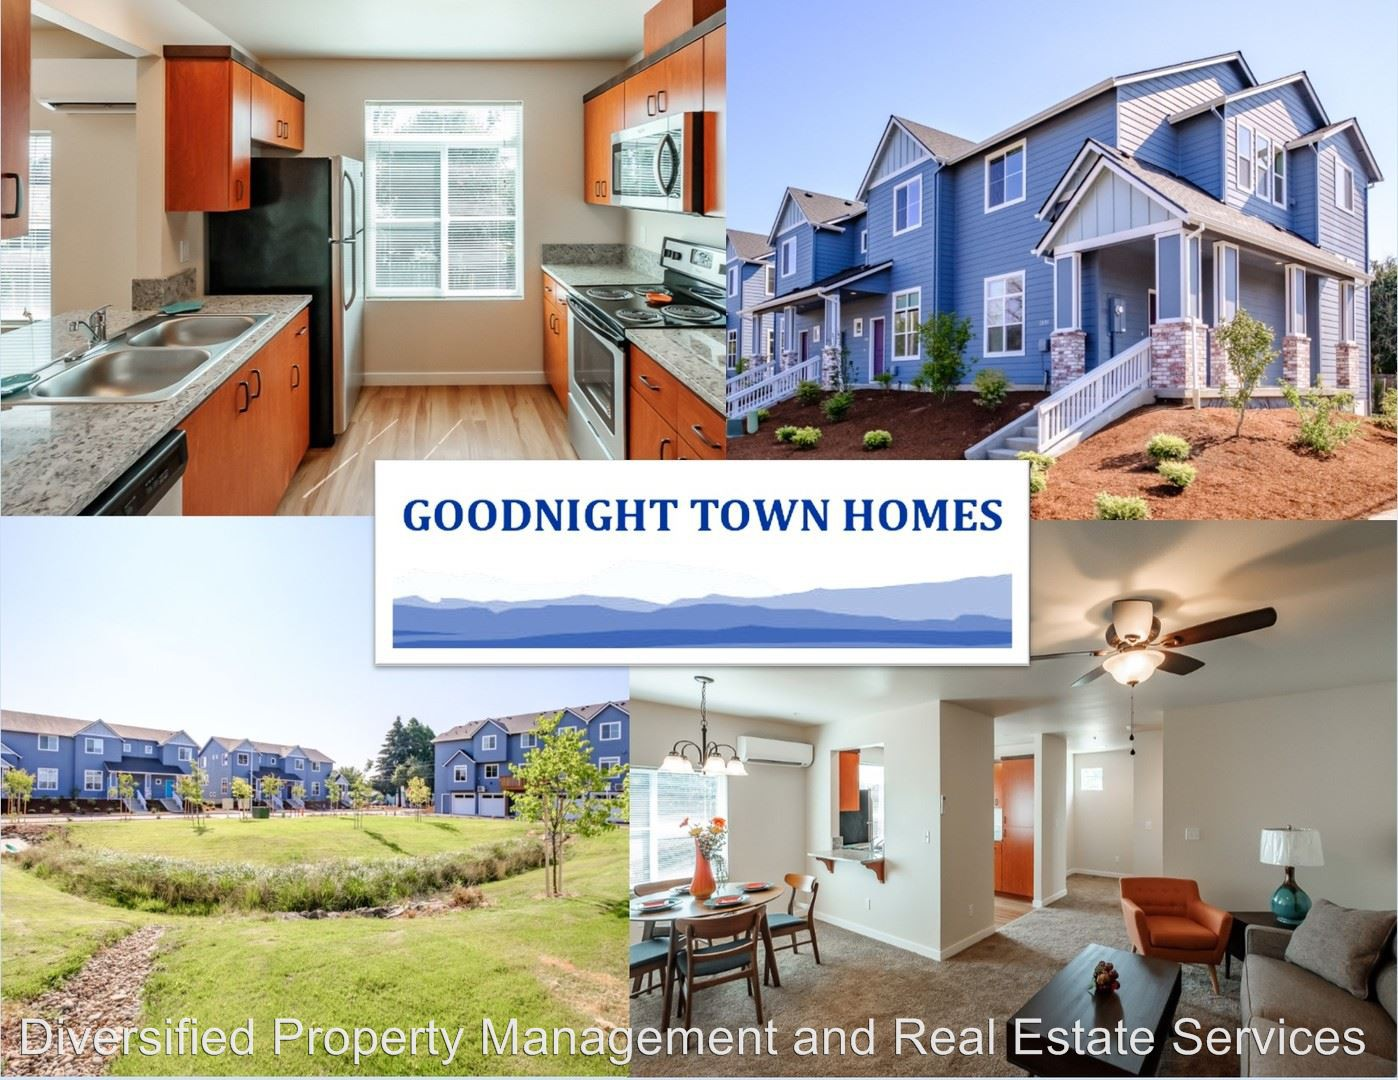 Apartments Near Phagans Beauty College Goodnight Townhomes for Phagans Beauty College Students in Corvallis, OR